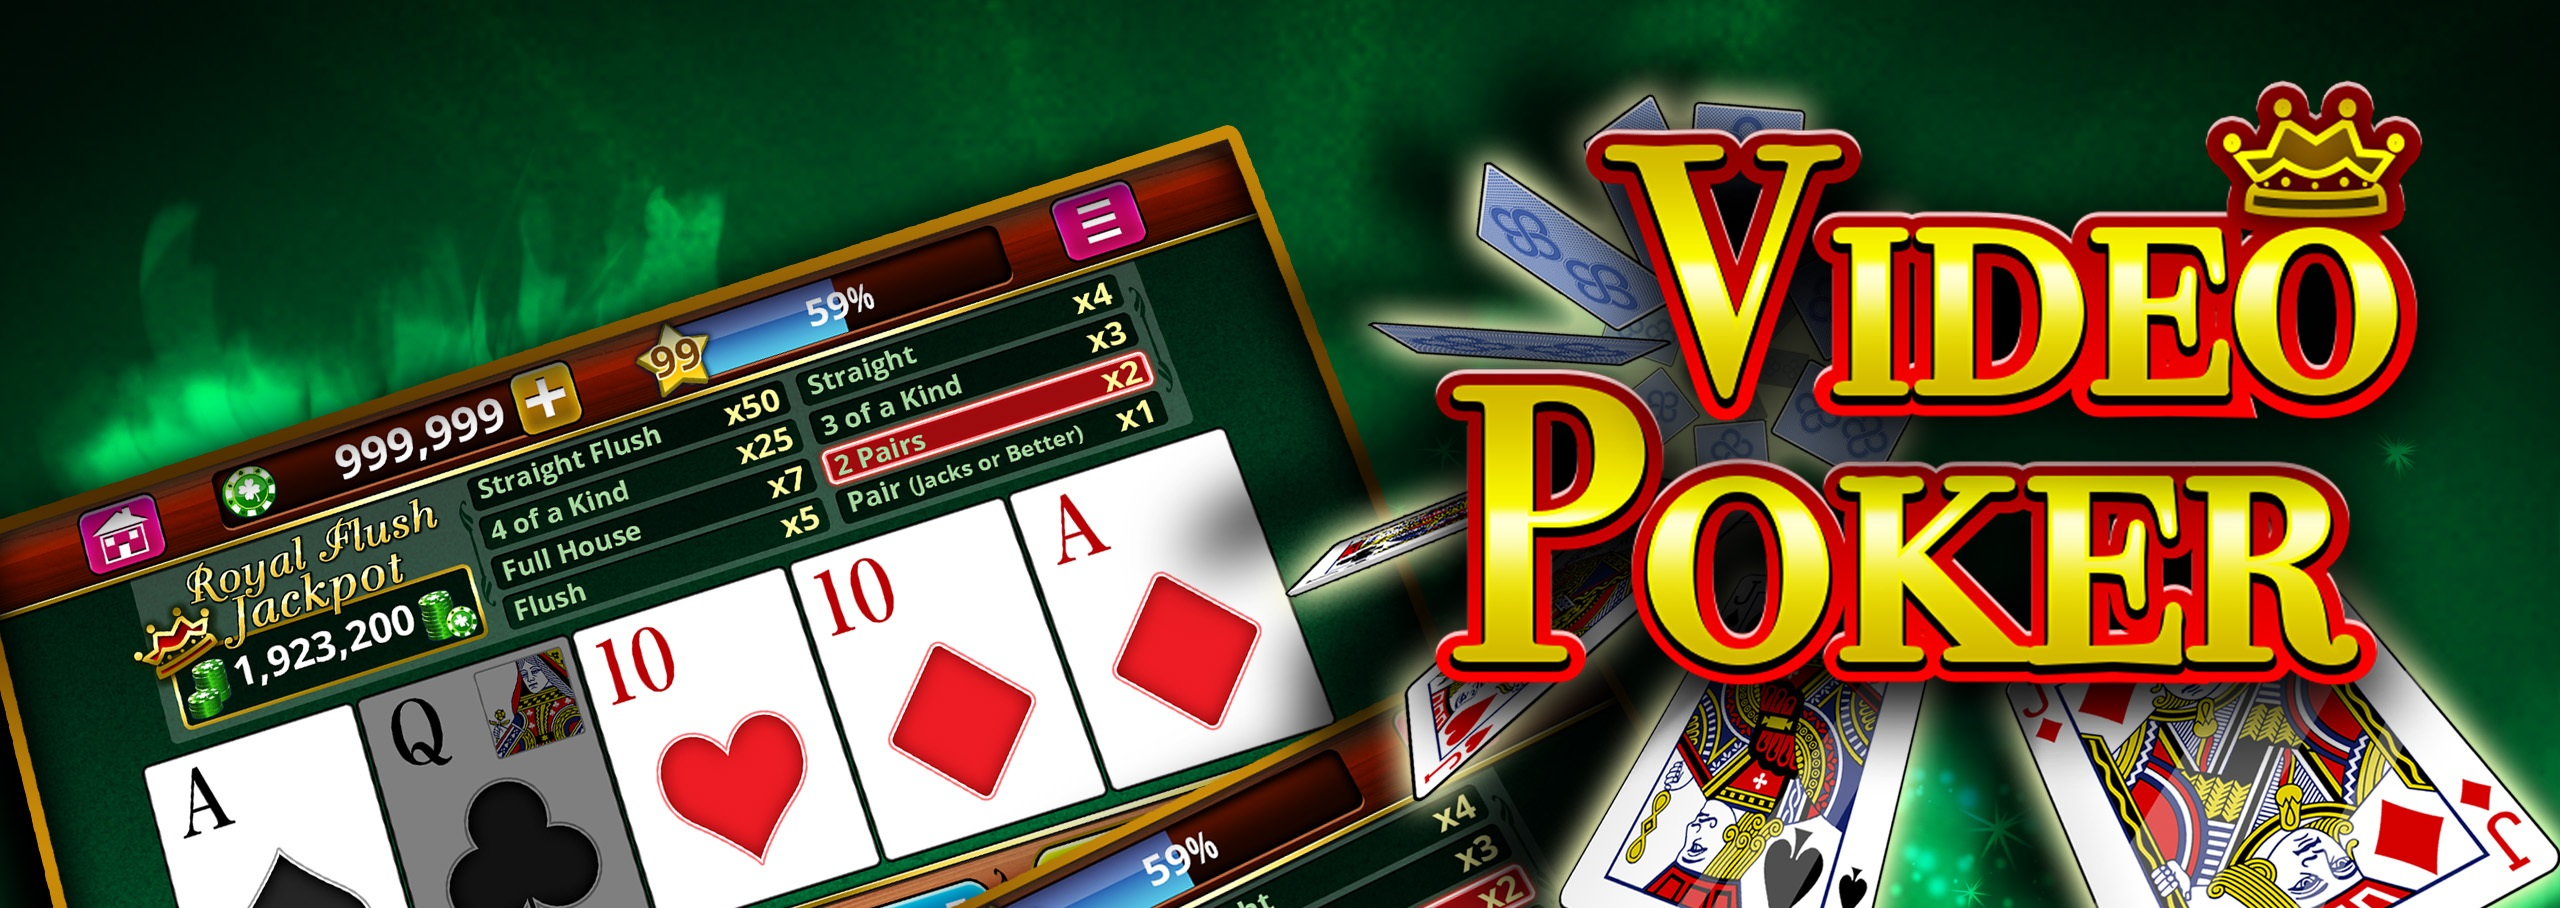 Tips for playing video poker